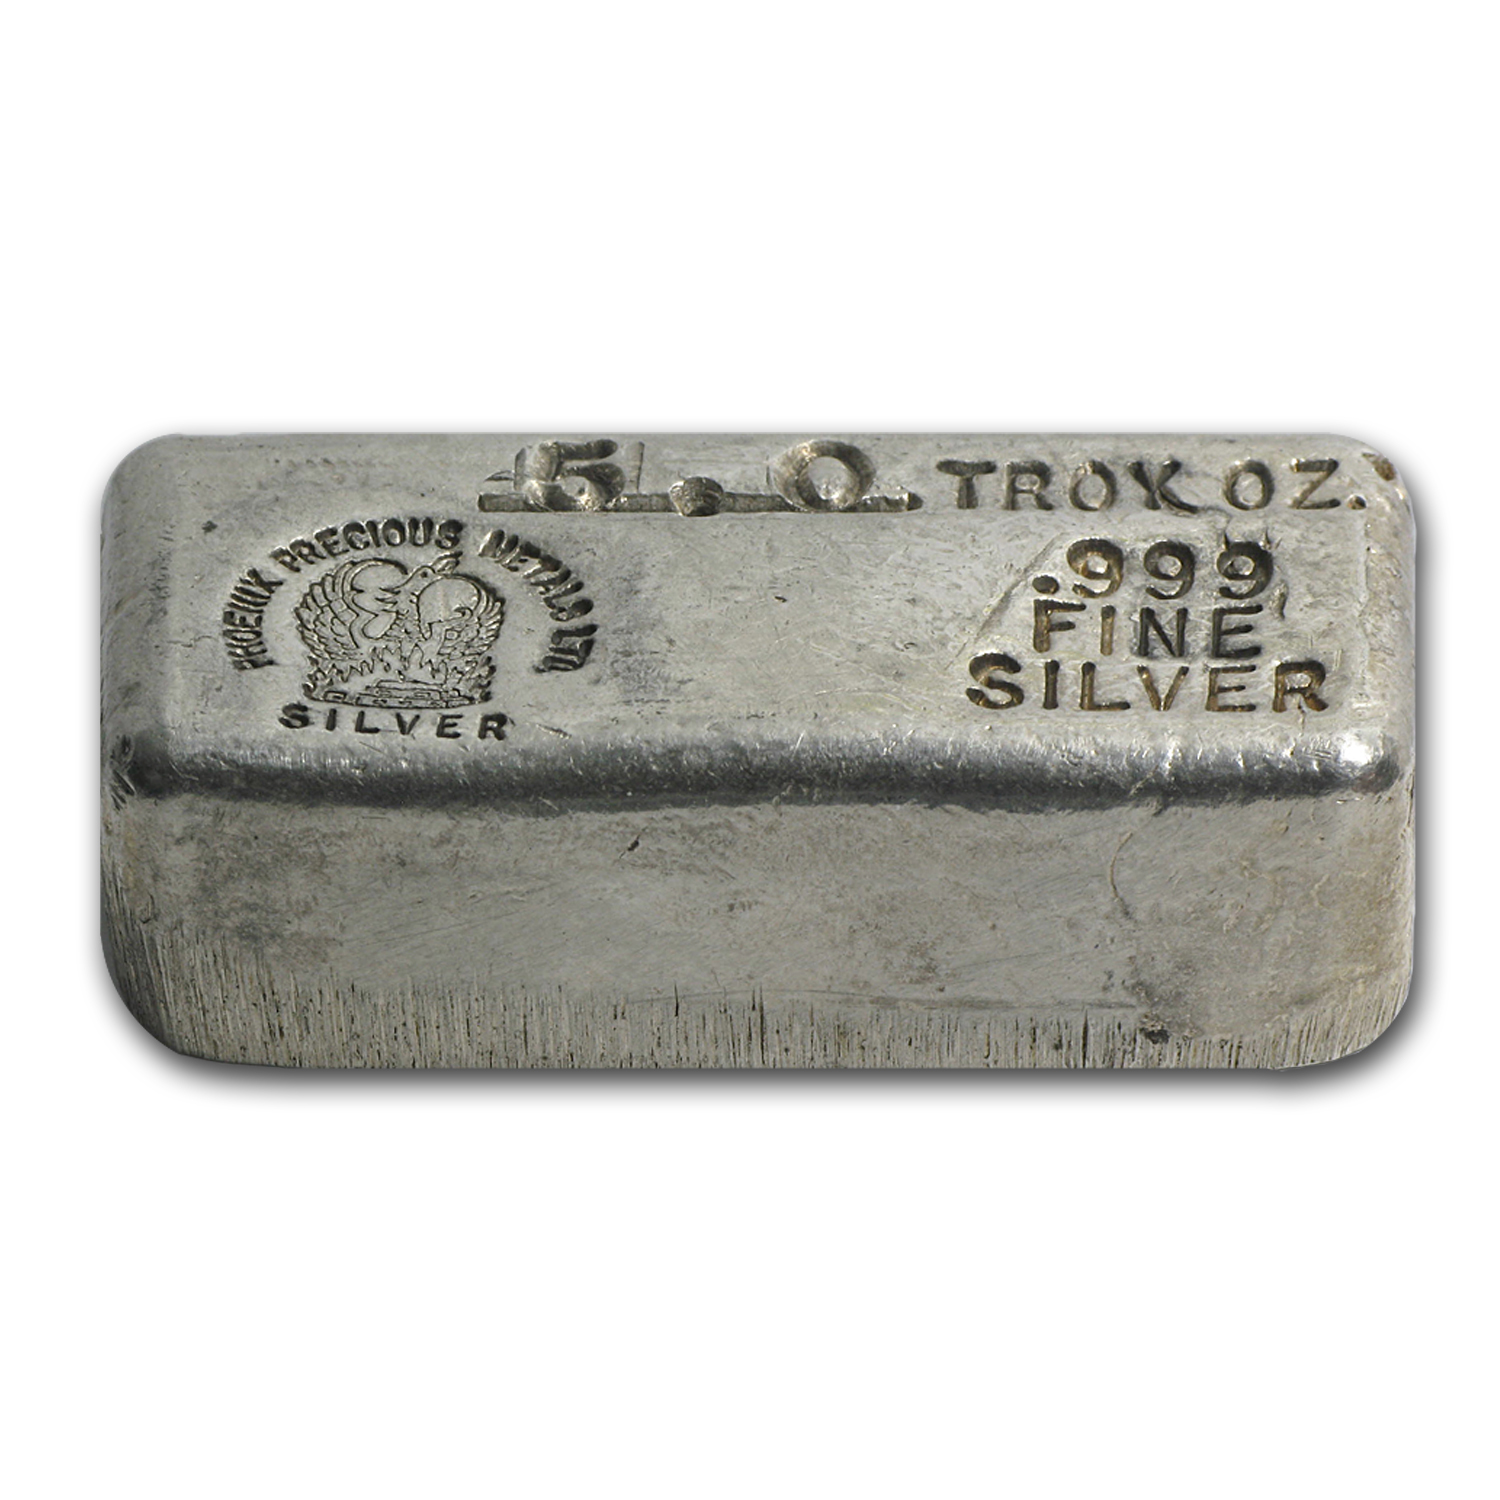 5 oz Silver Bars - Phoenix Precious Metals Ltd.